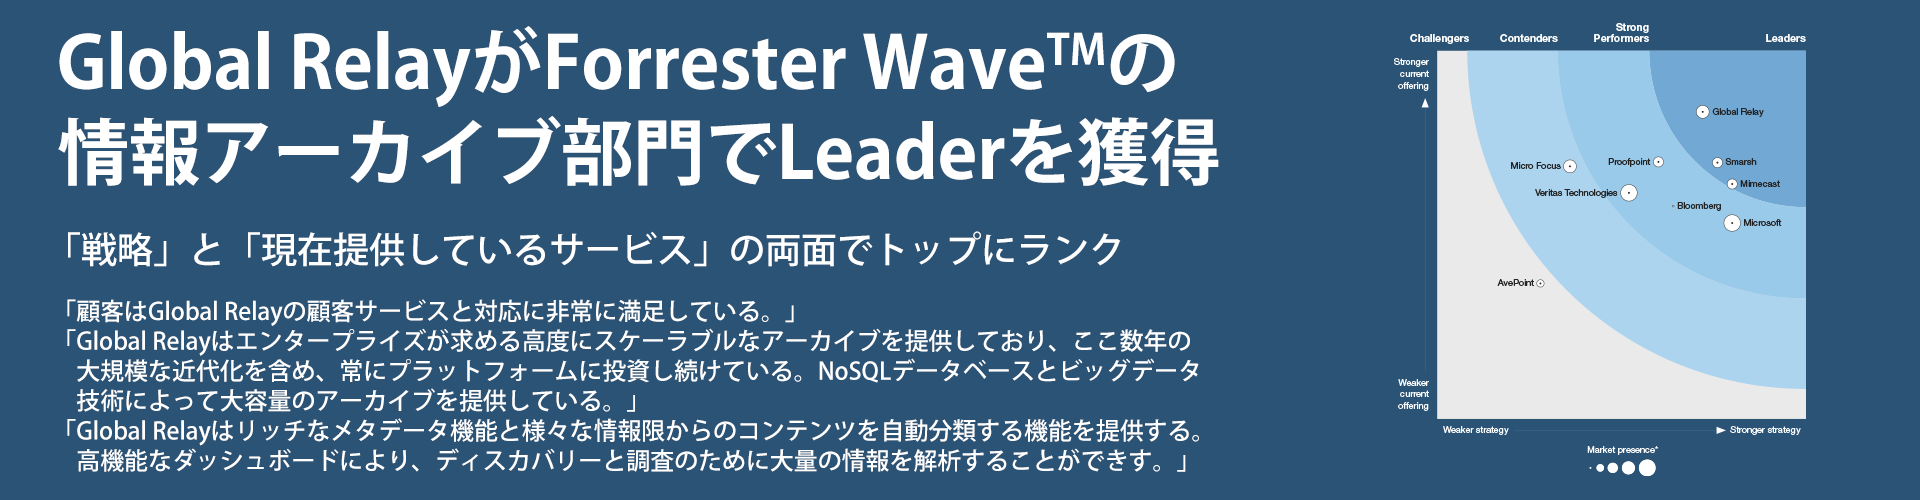 Global Relay Forrester Wave Leader